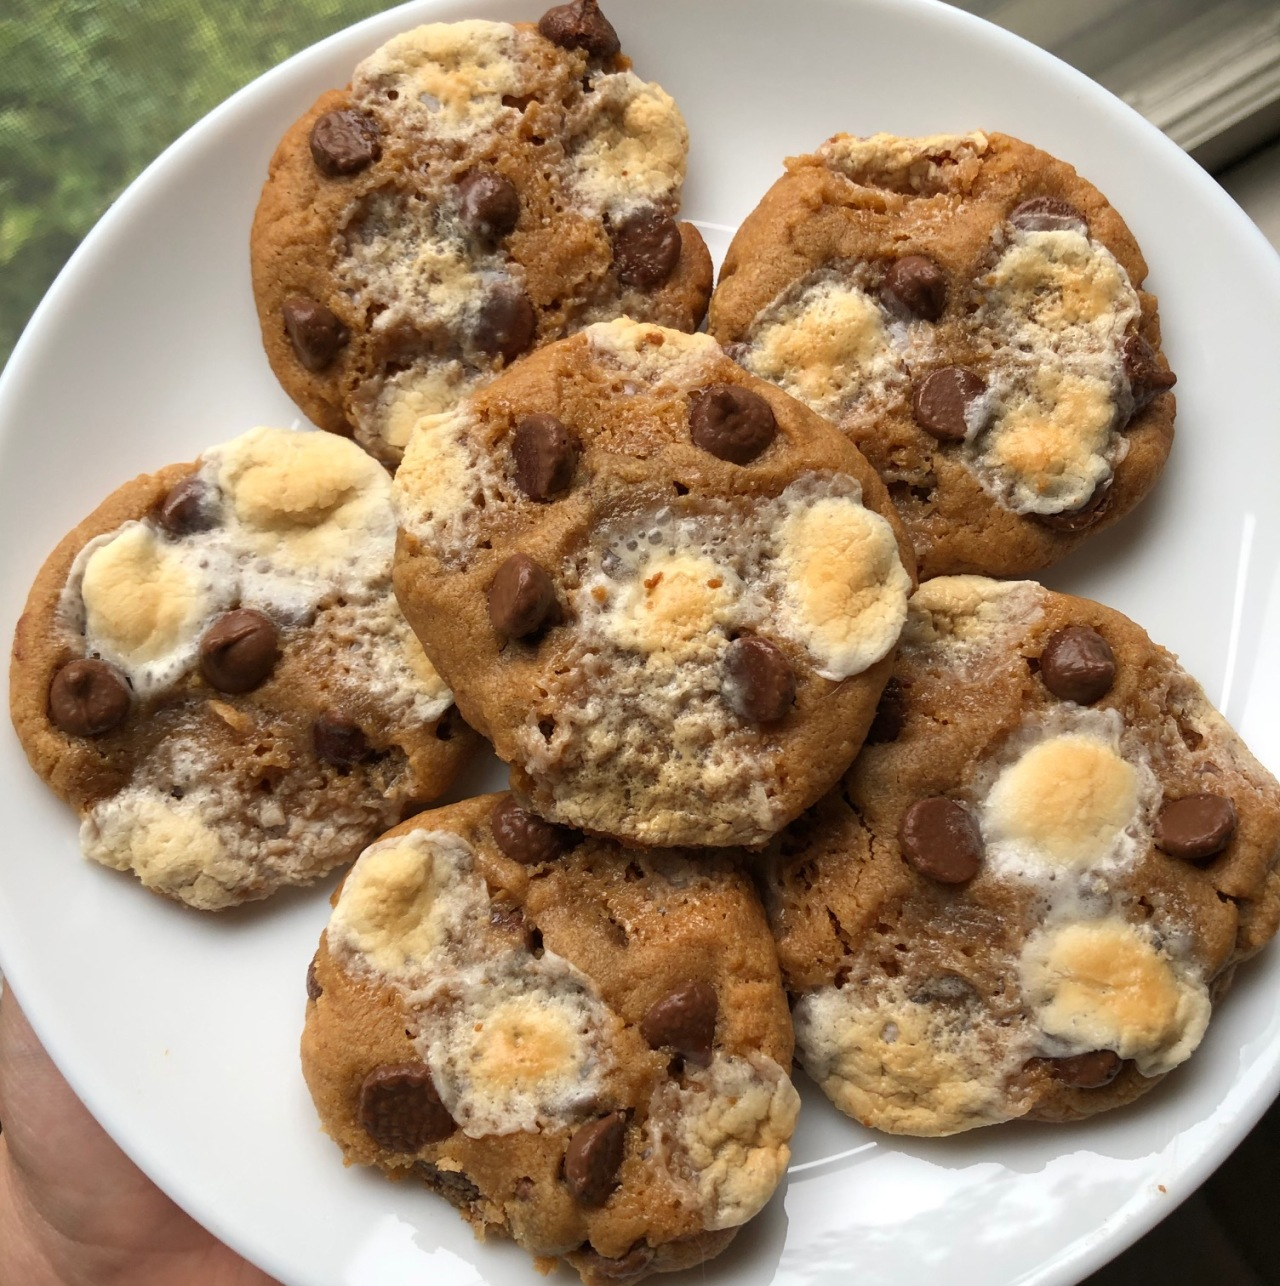 Gluten Free Peanut Butter S'mores Cookies